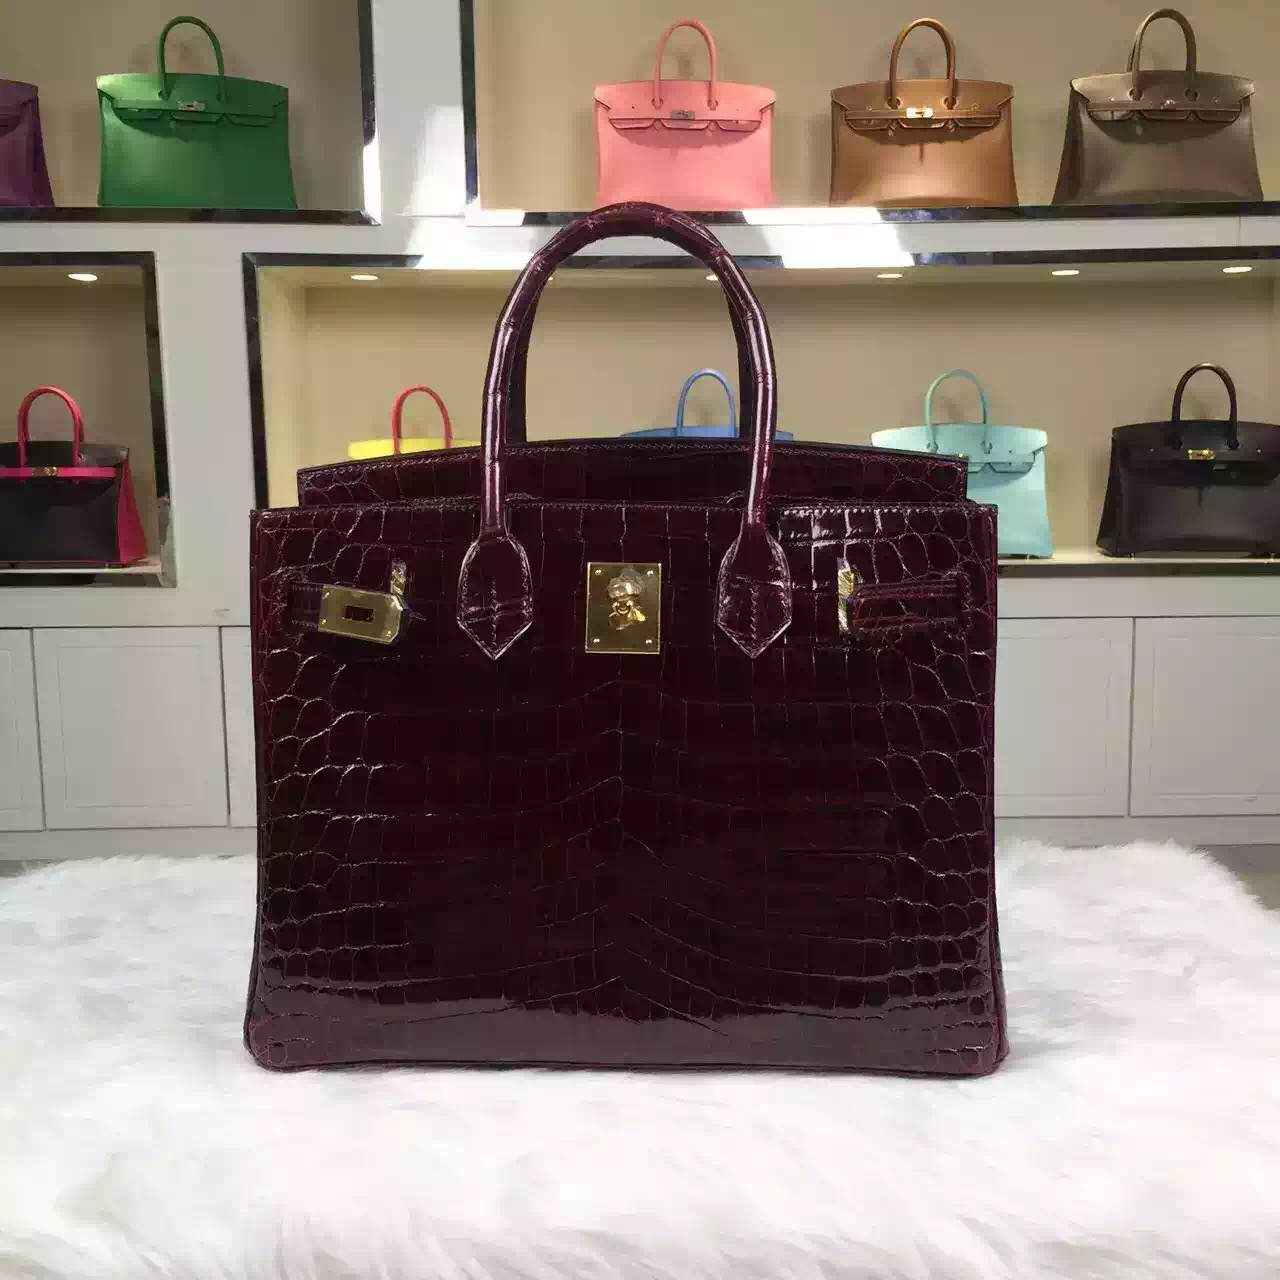 High Quality Hermes Crocodile Shiny Skin Bordeaux Red Birkin Bag 30cm Gold Hardware